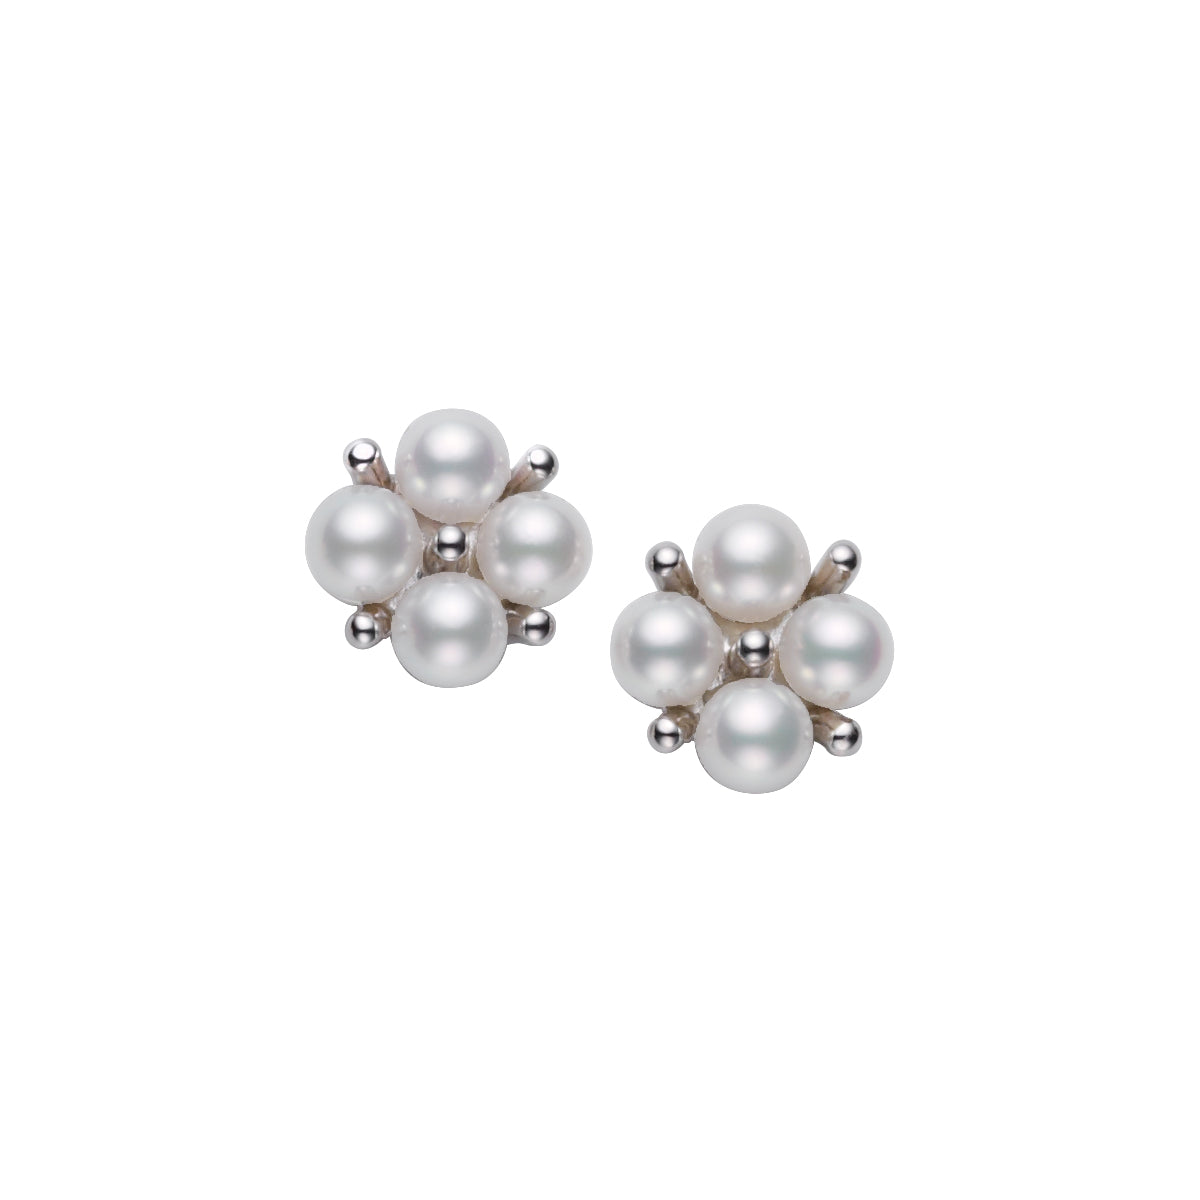 Mikimoto Japan Akoya Pearl and 18K White Gold Cluster Earrings